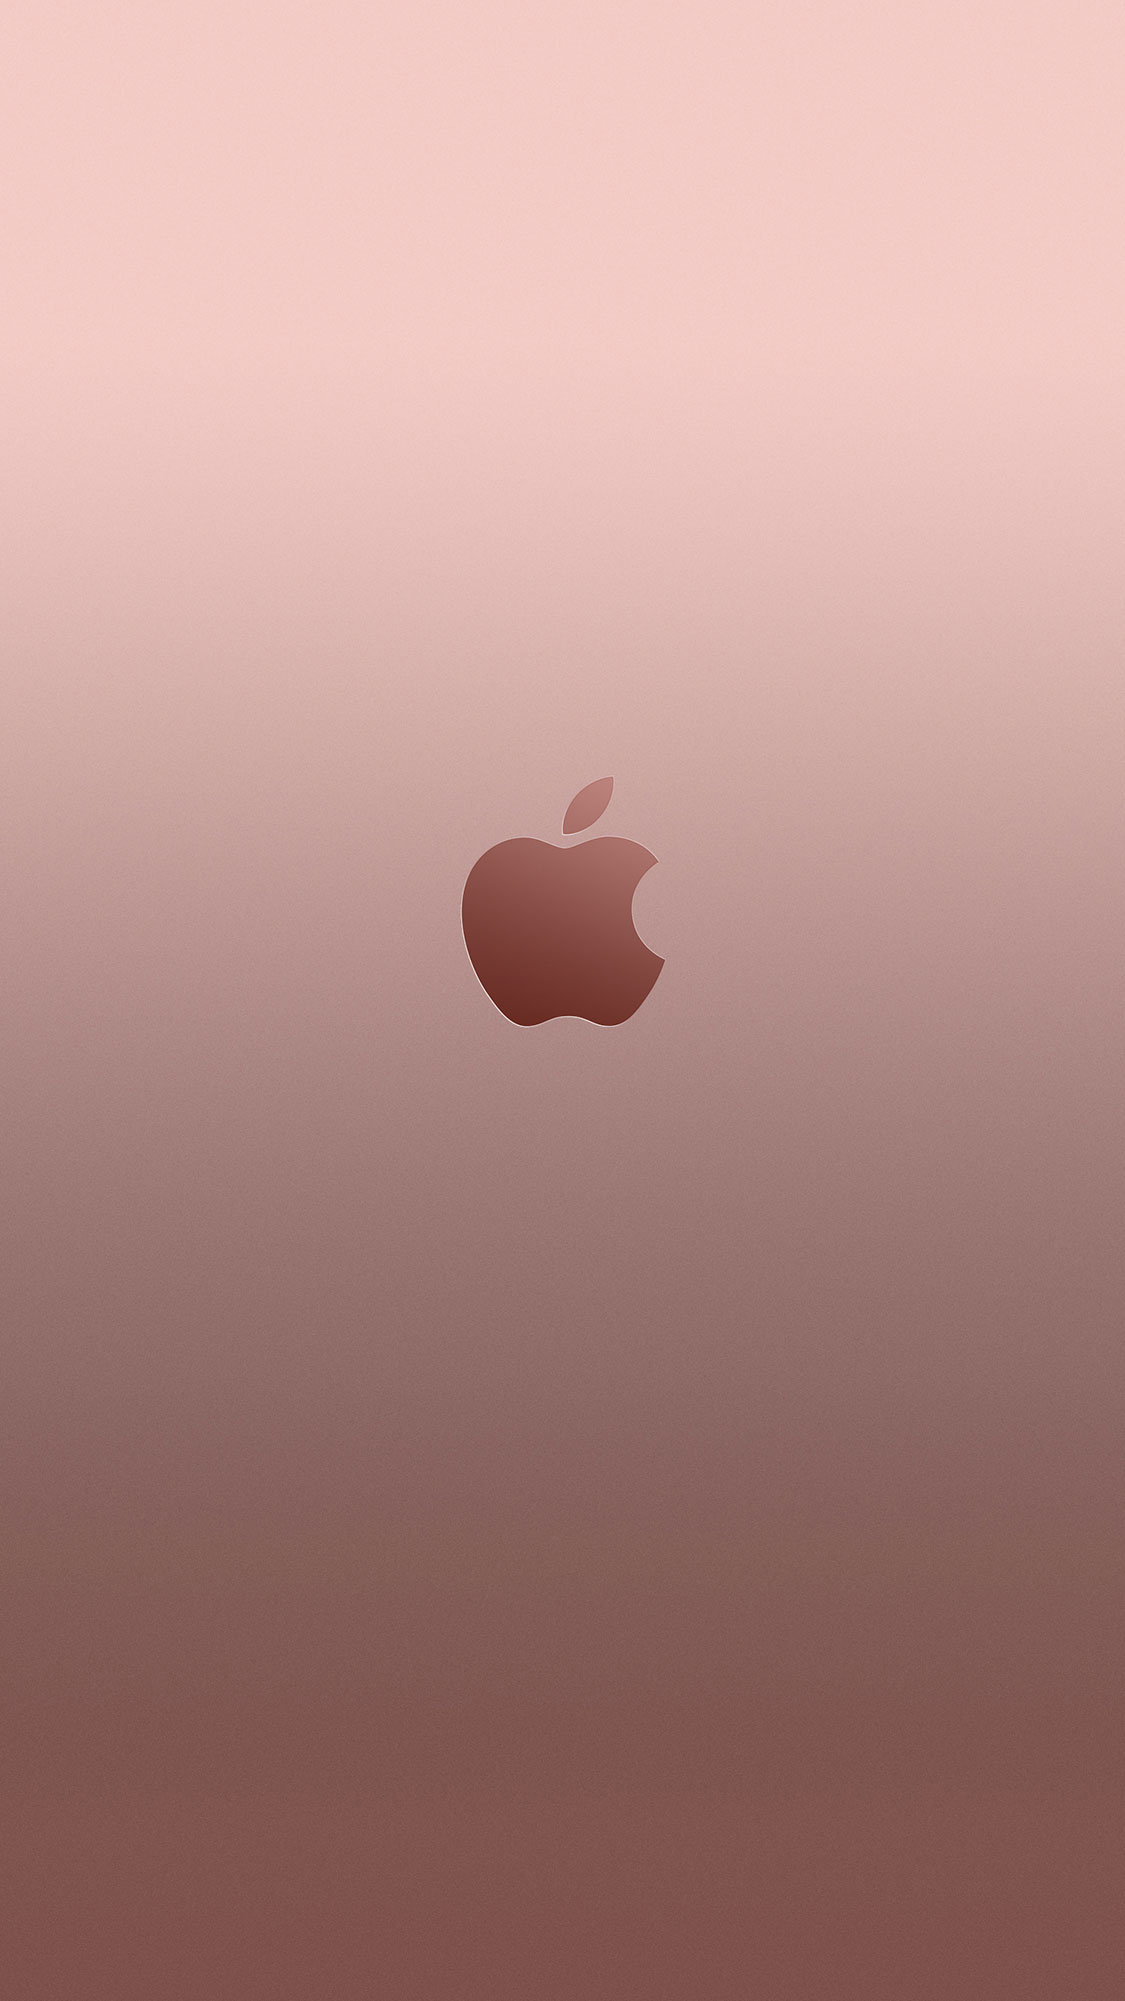 41 Rose Gold Iphone Wallpaper On Wallpapersafari